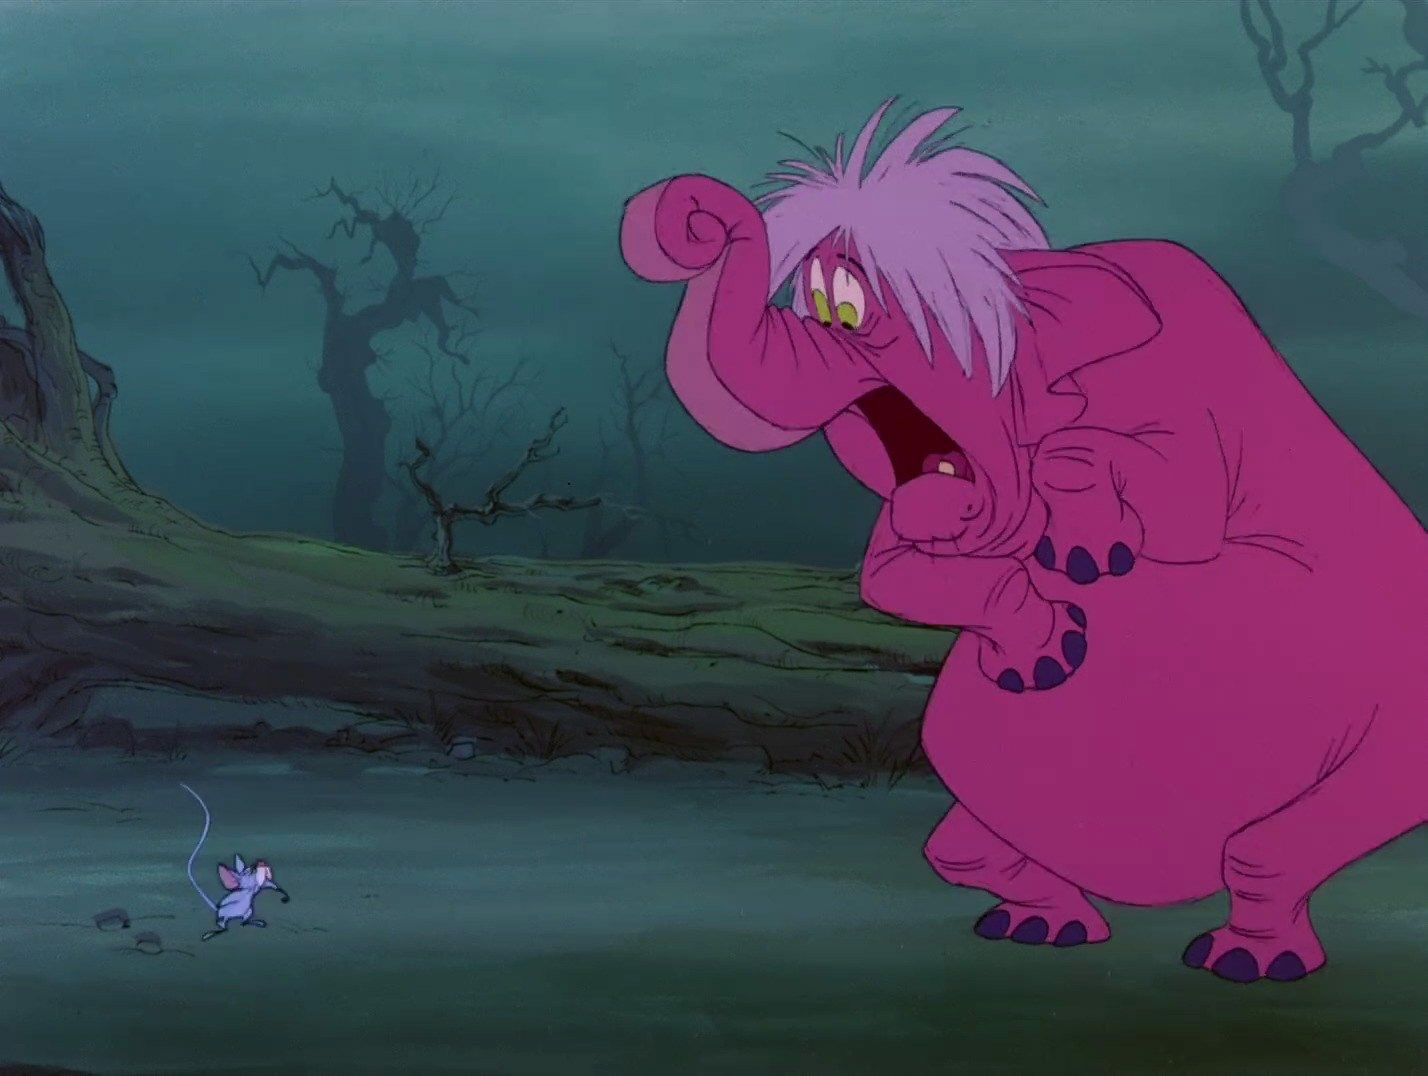 Pin by Zlopty on Sword Stone 8  Madame mim, Sword in the stone